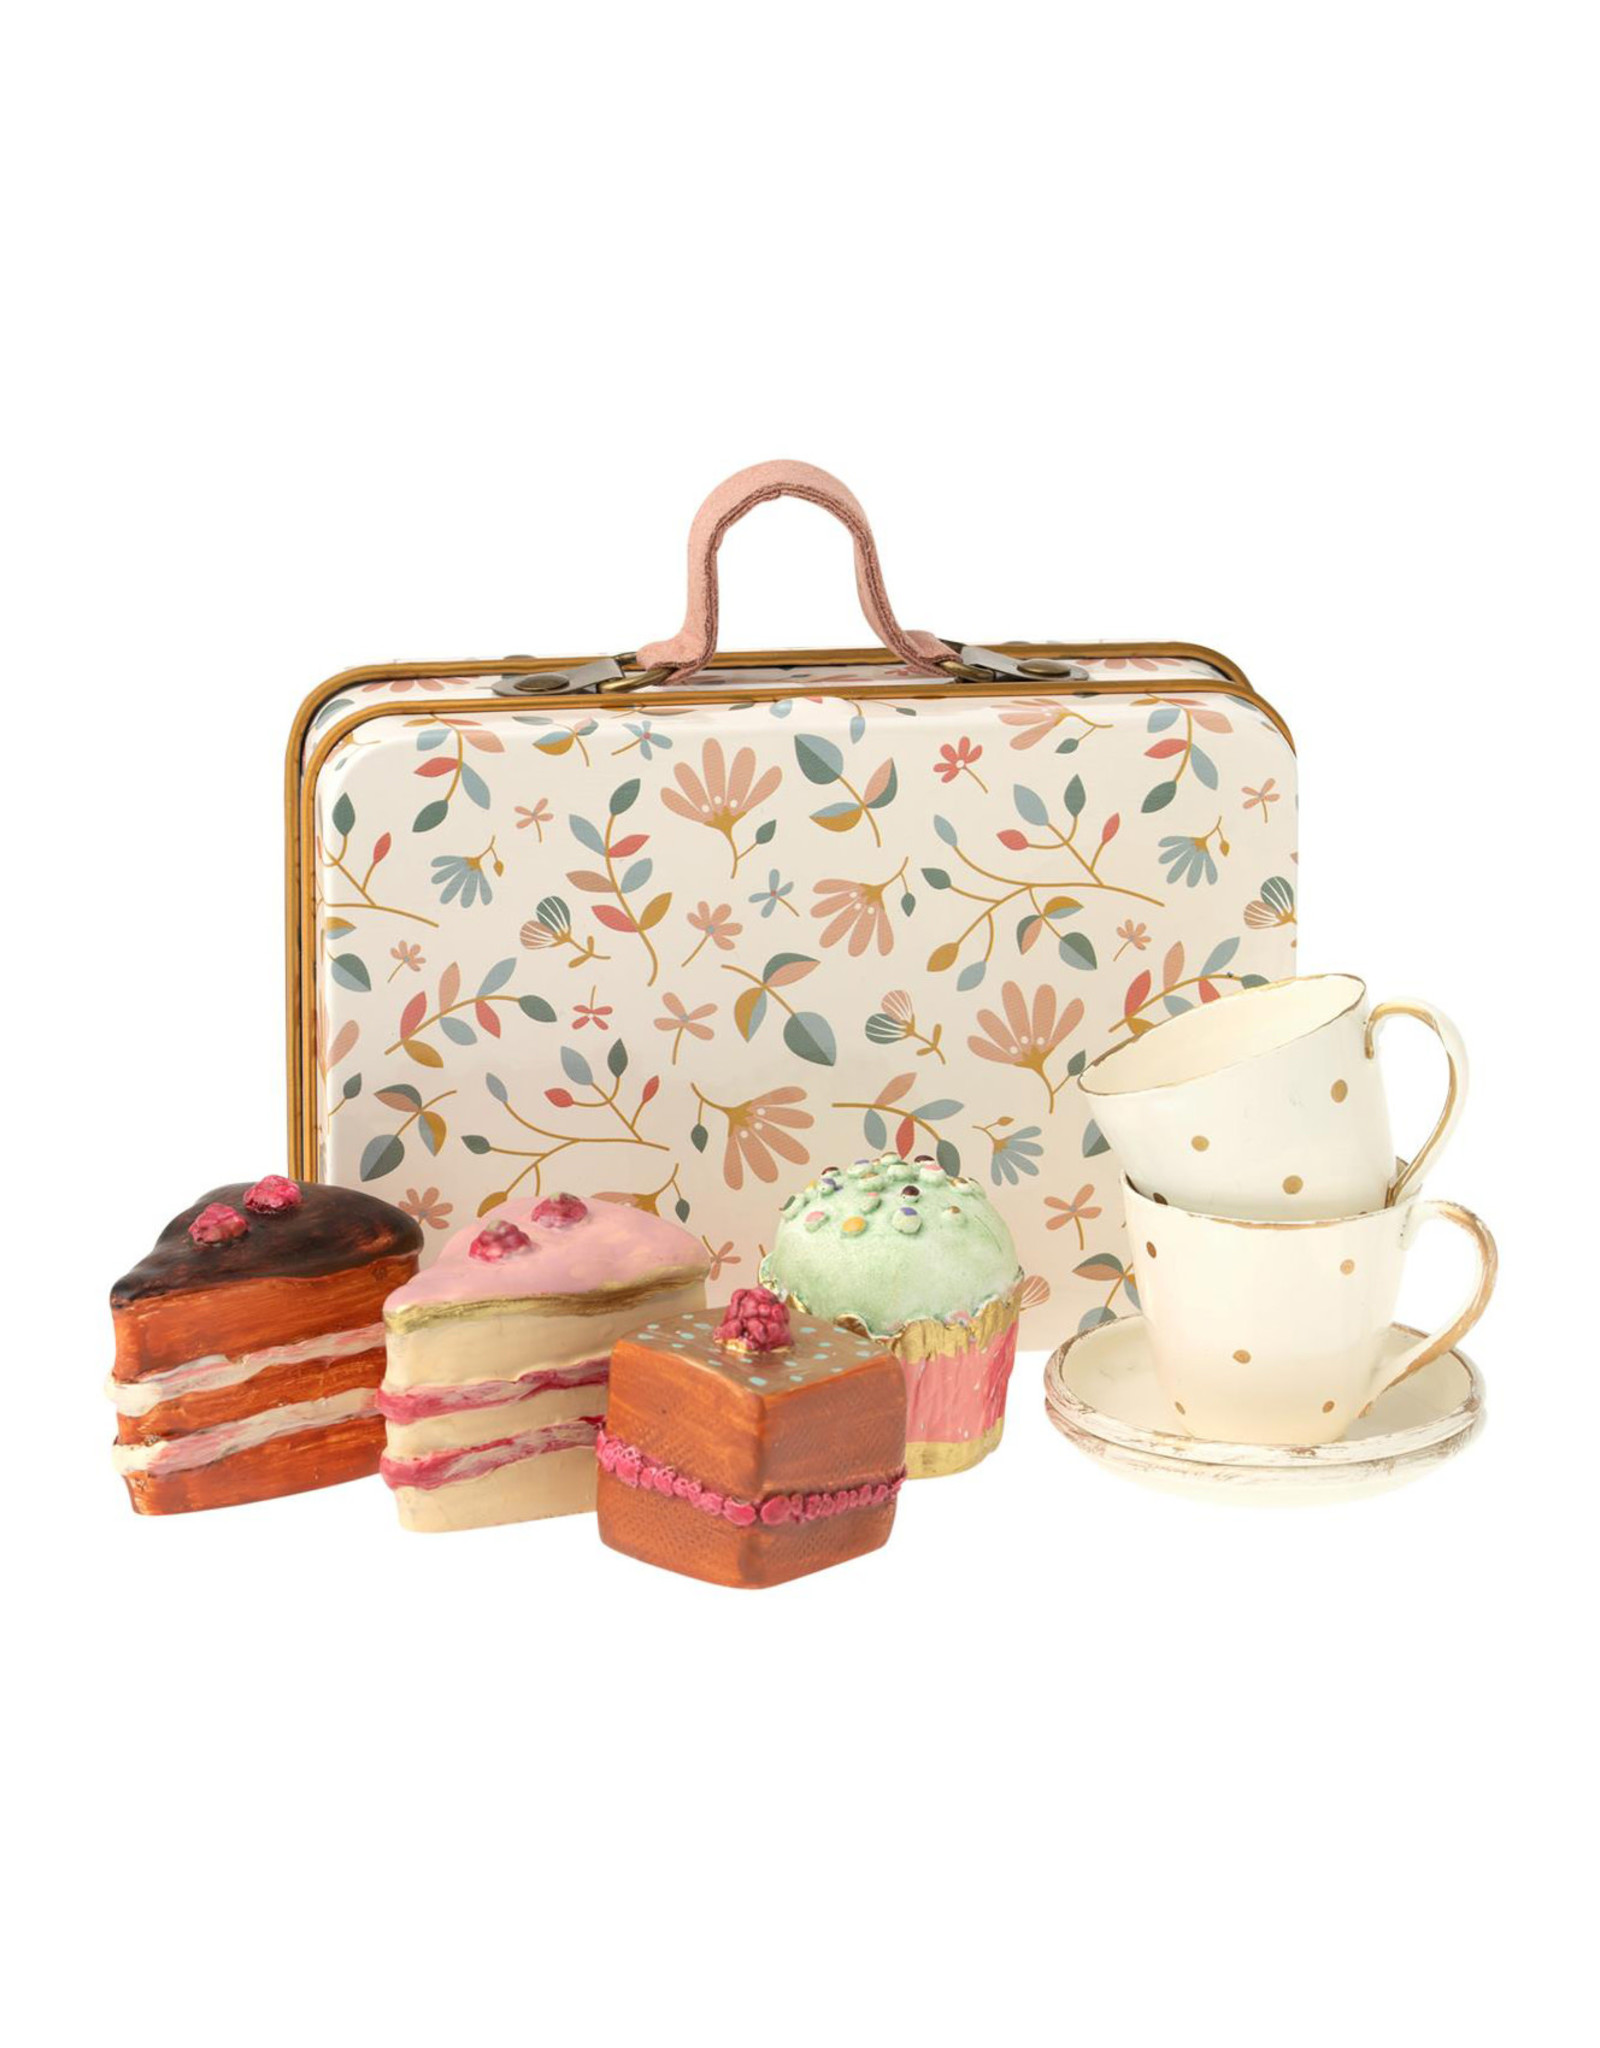 Maileg Cake Time in Suitcase